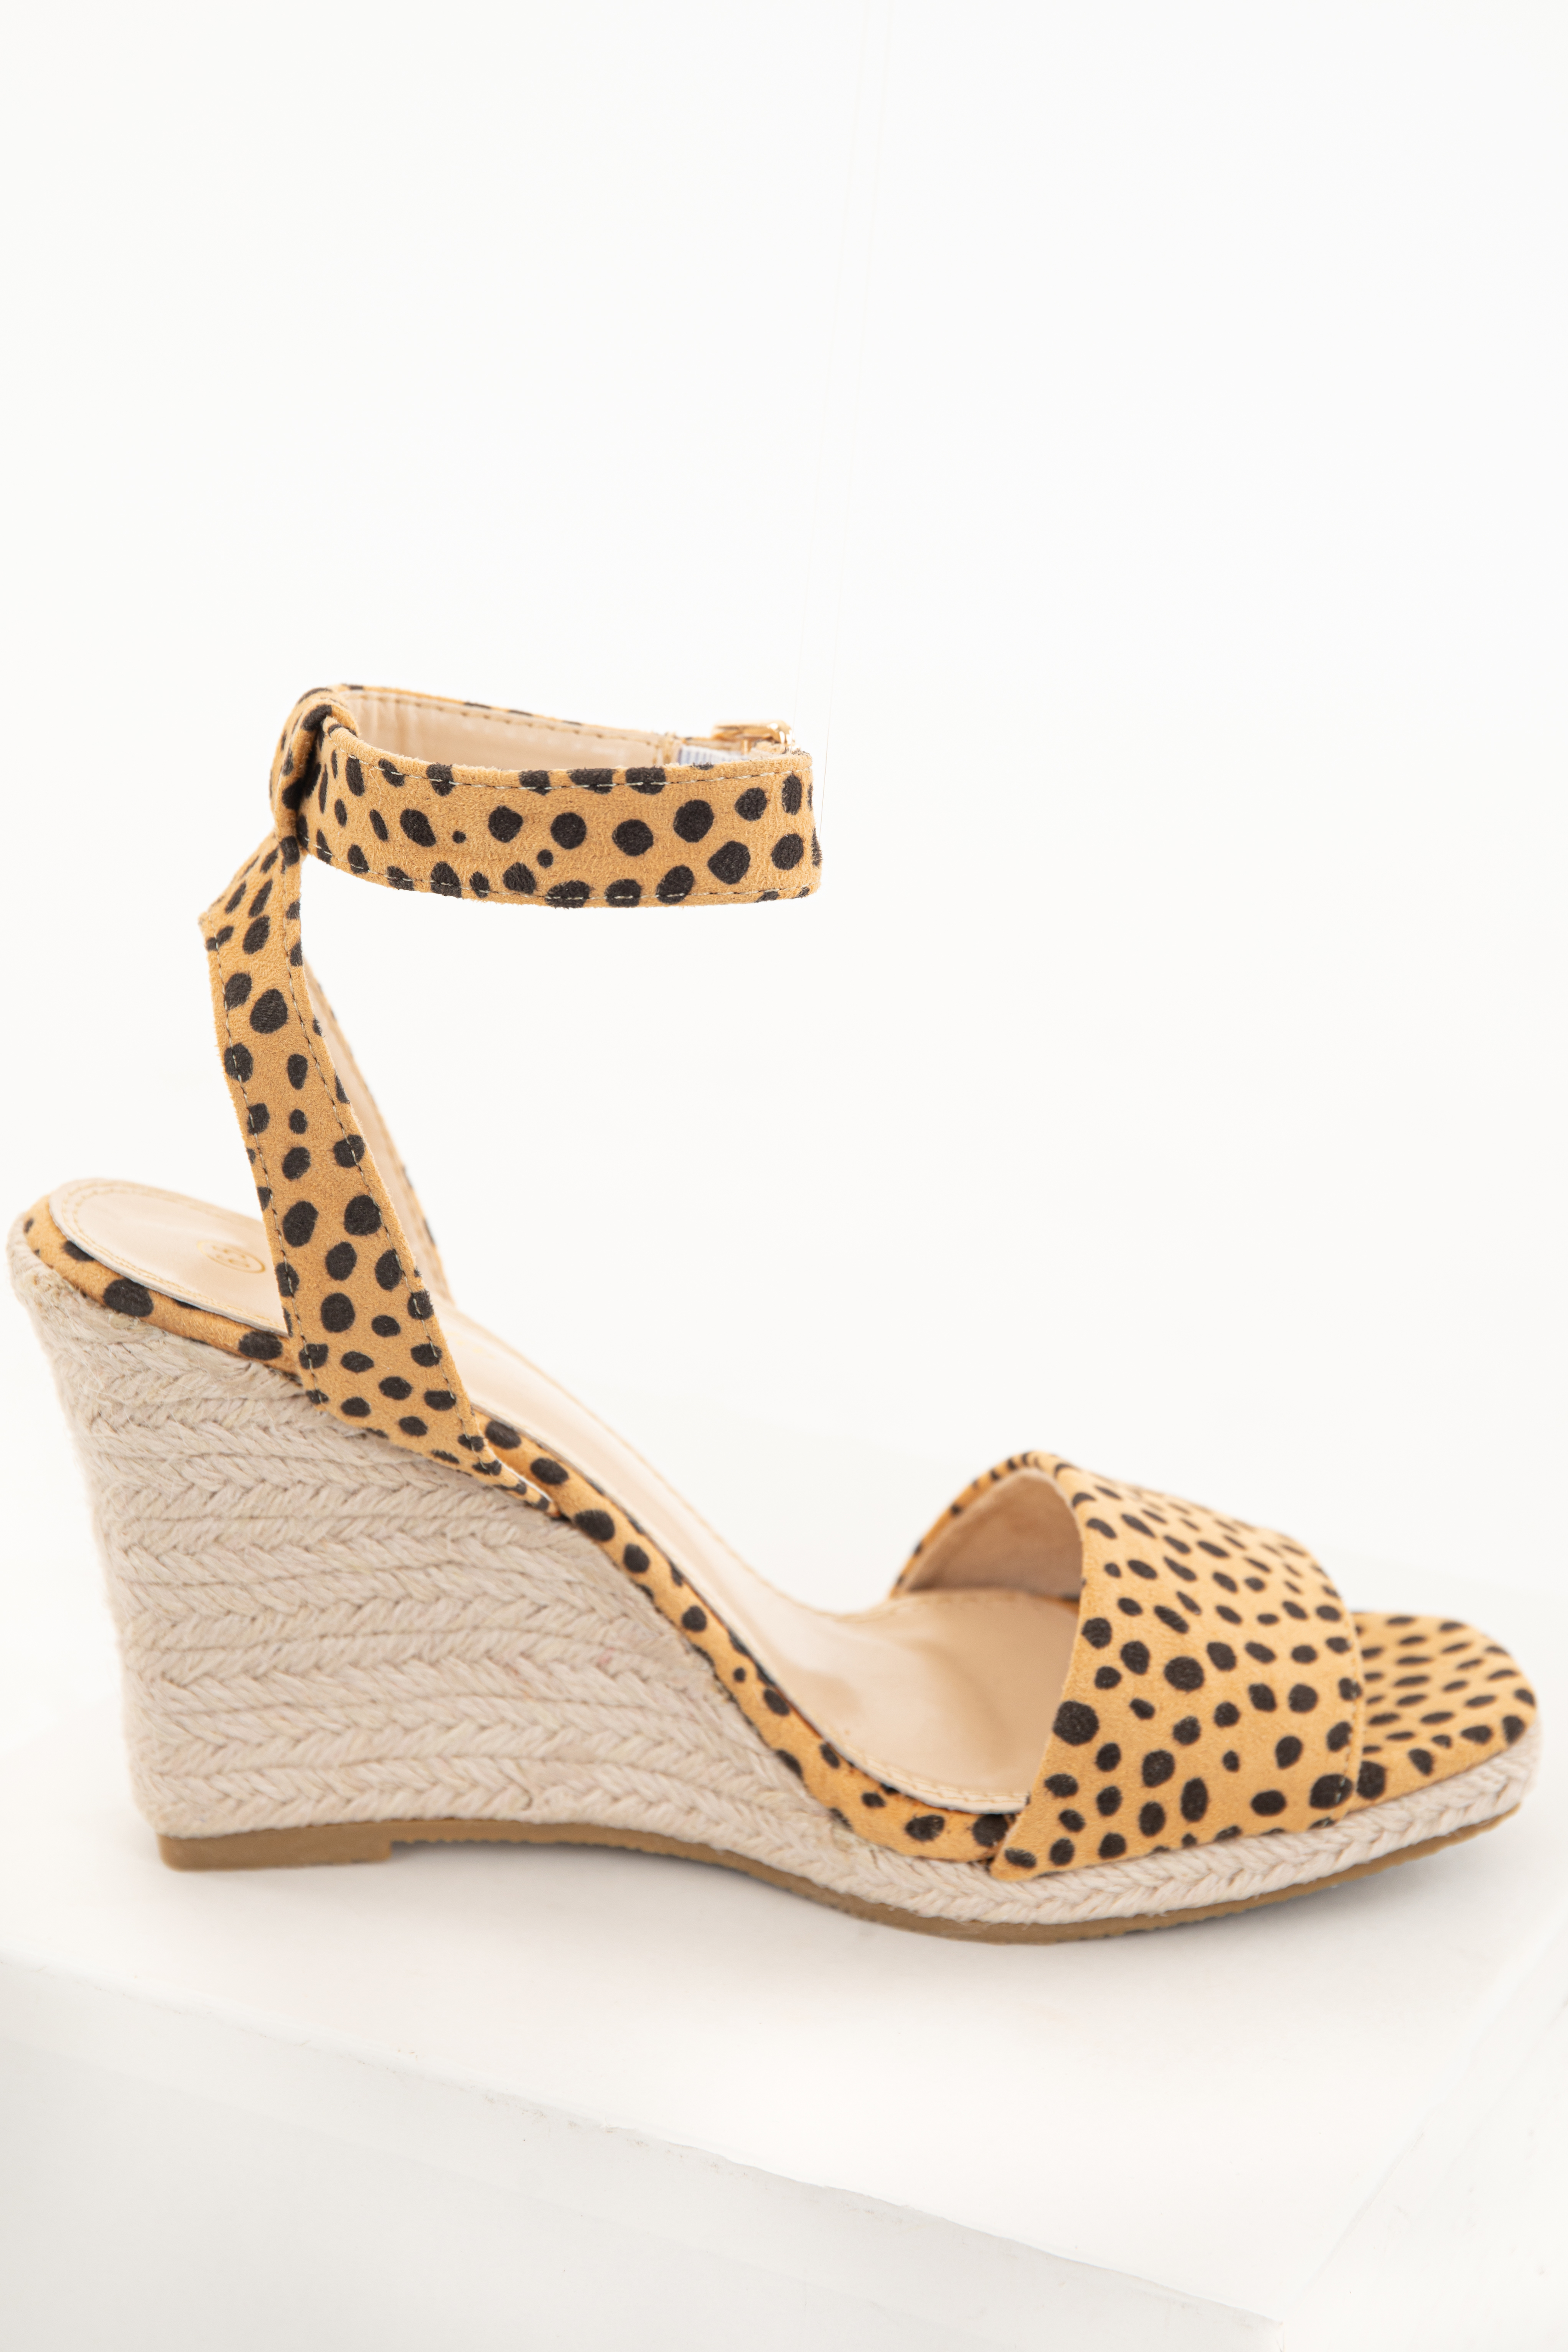 Beige and Black Faux Suede Animal Print Espadrille Wedges